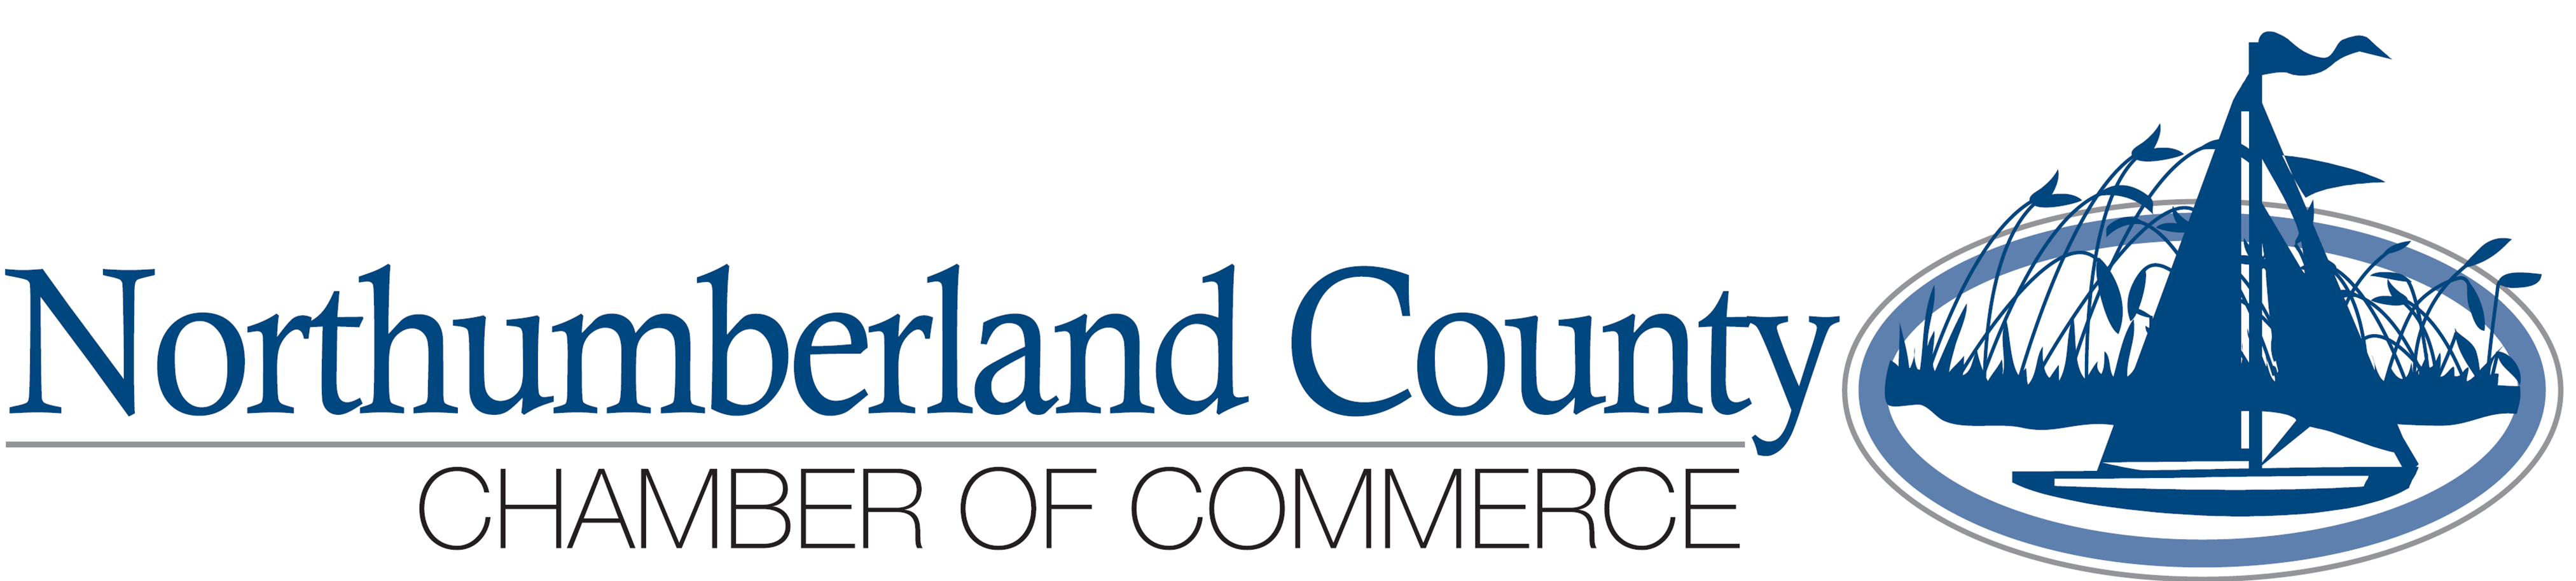 Welcome to the Northumberland County Chamber of Commerce